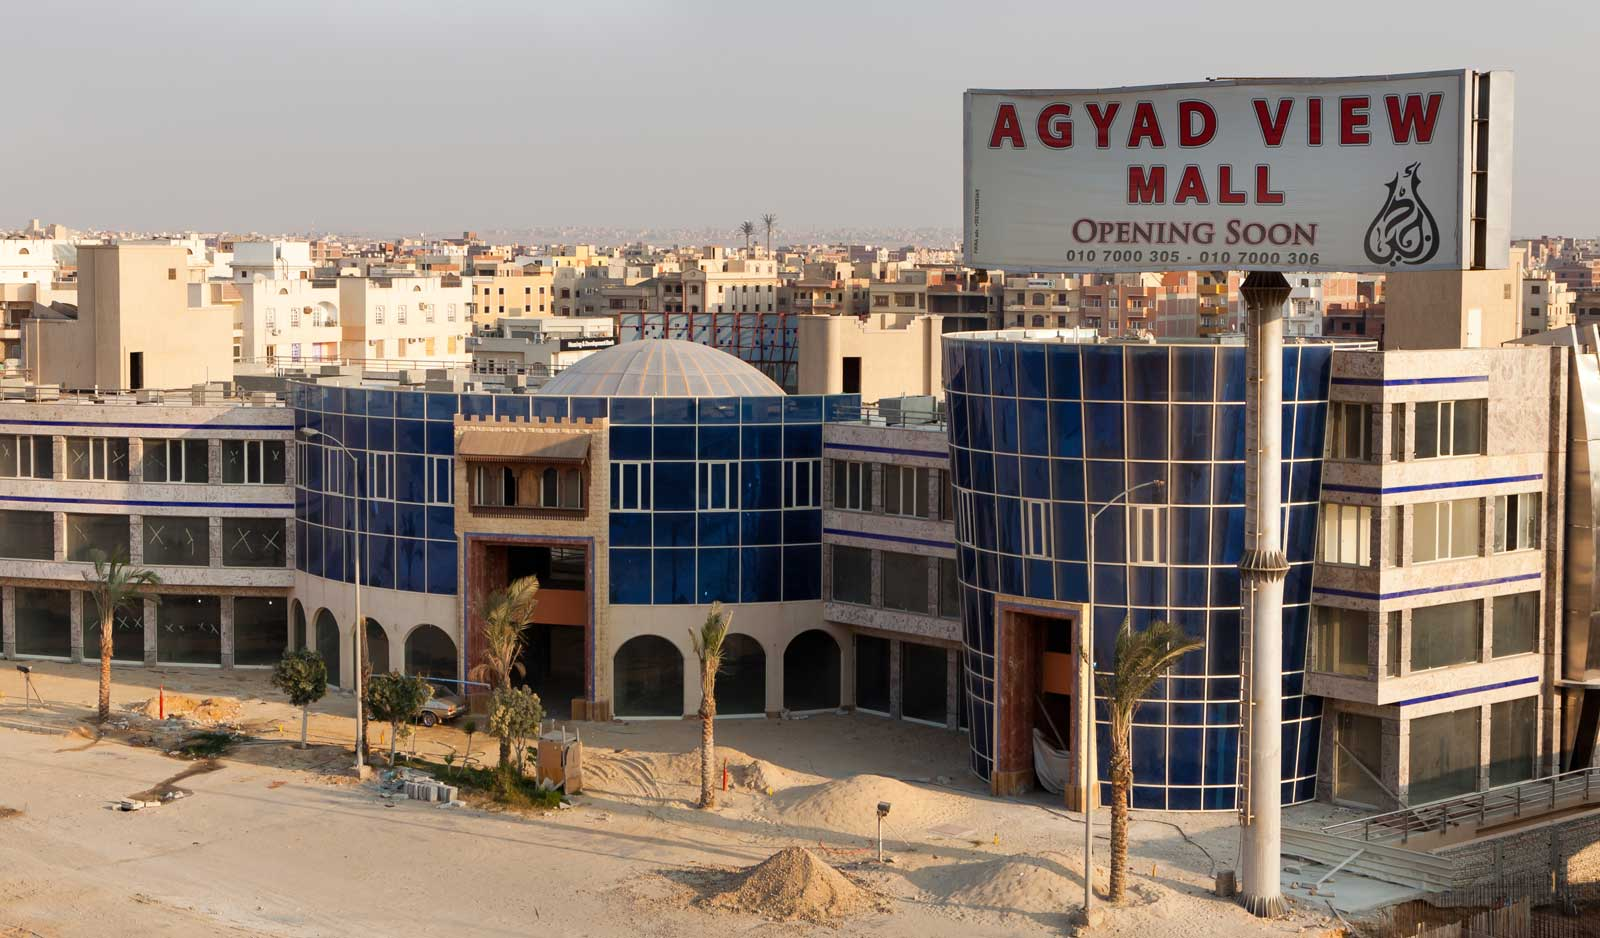 Agyad View